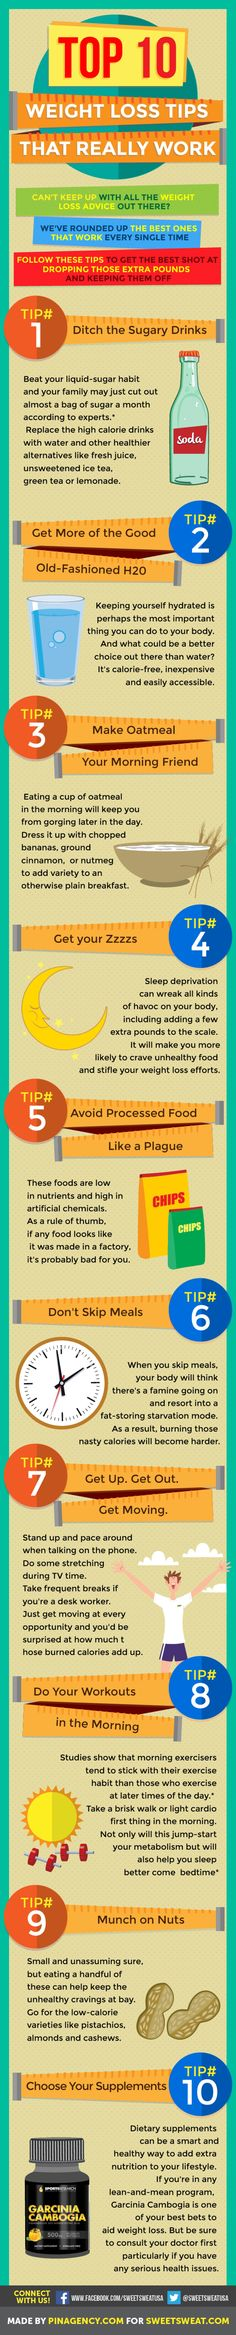 Top 10 #WeightLoss Tips That Really Work  #Infographic #fitness